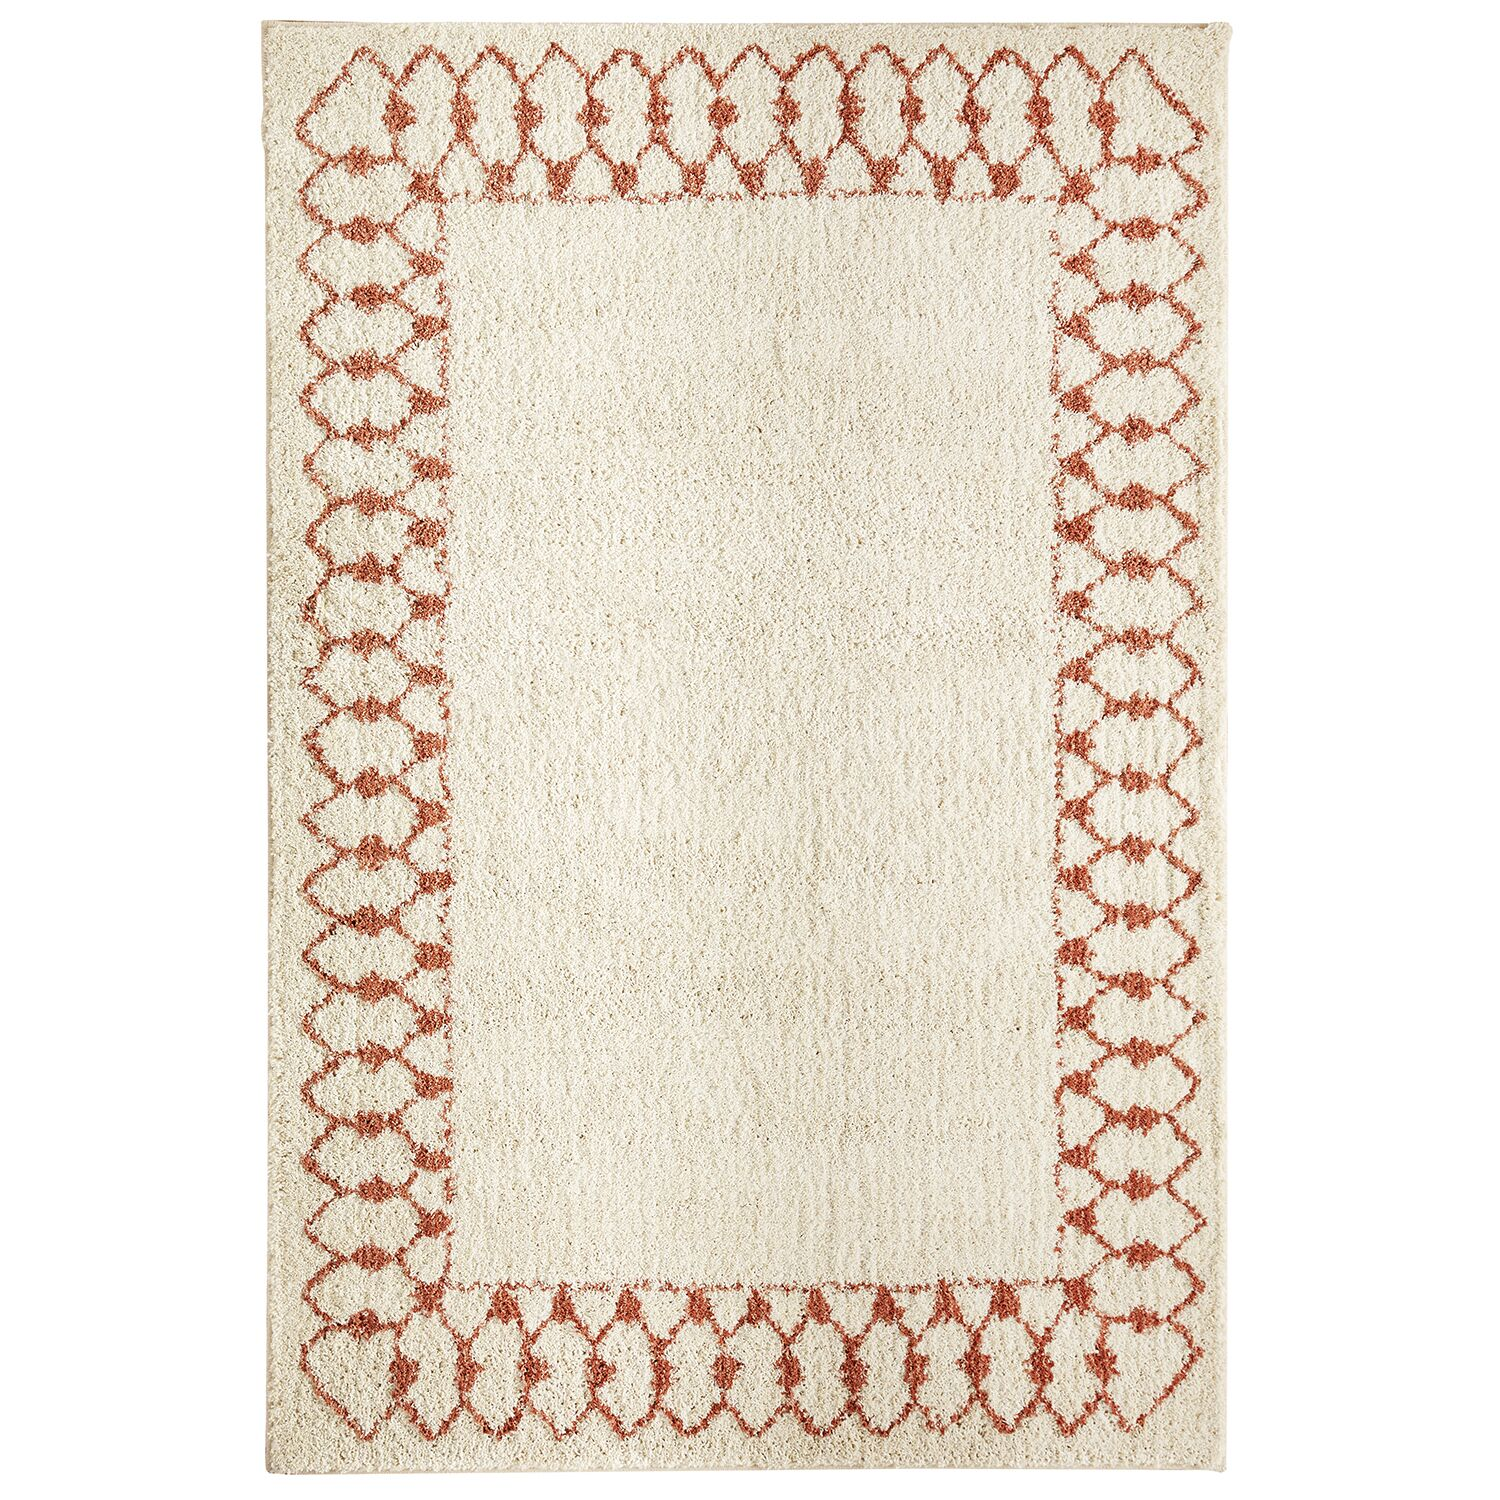 Cavanaville Chained Border Beige/Coral Area Rug Rug Size: Rectangle 8' x 10'